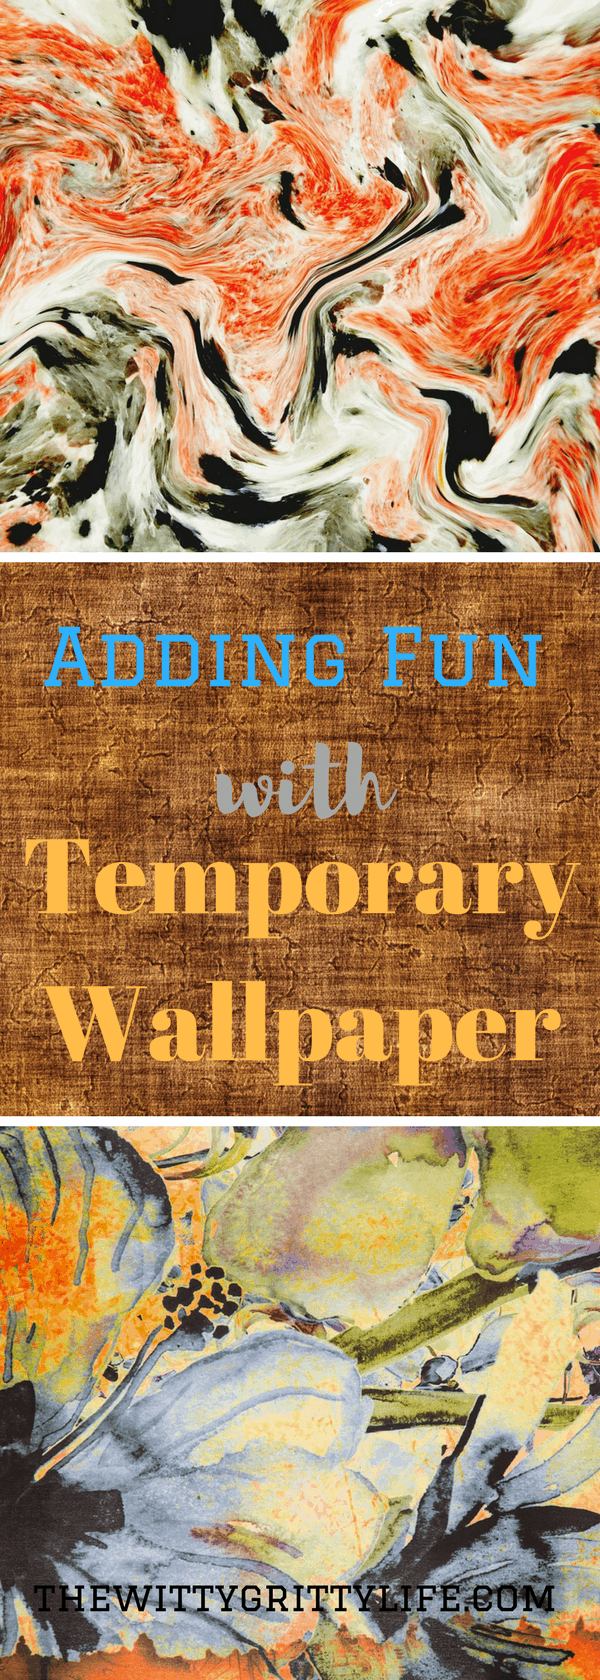 Temporary wallpaper is a fun new way to add interest and pops of color to any room of your house! No longer for apartment dwellers only, temporary wallpaper is equally at home in your living room, kitchen or kids room. Bathroom in need of a quick spruce up? You will love this little DIY project! Come and explore all the possibilities and advantages temporary wallpaper has to offer!